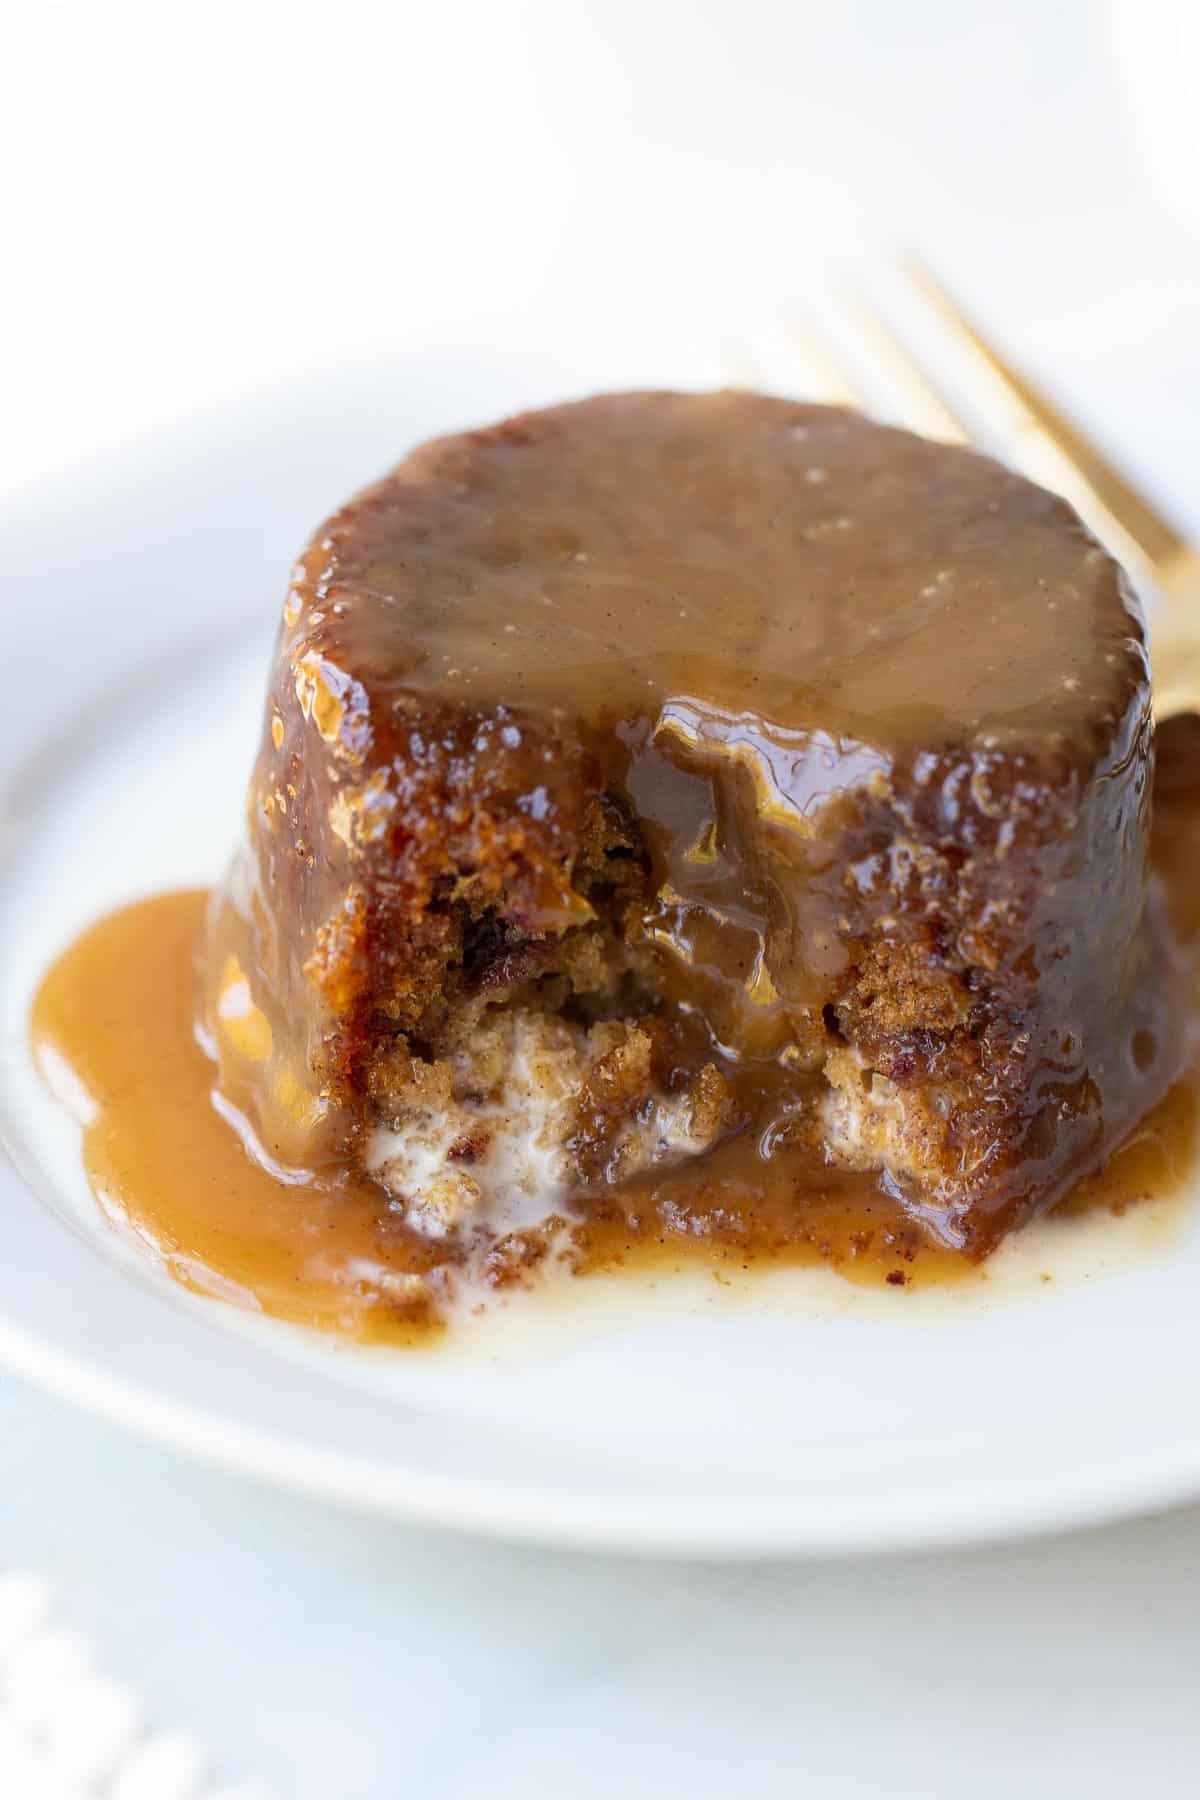 close up shot of sticky toffee pudding covered in sauce on white plate